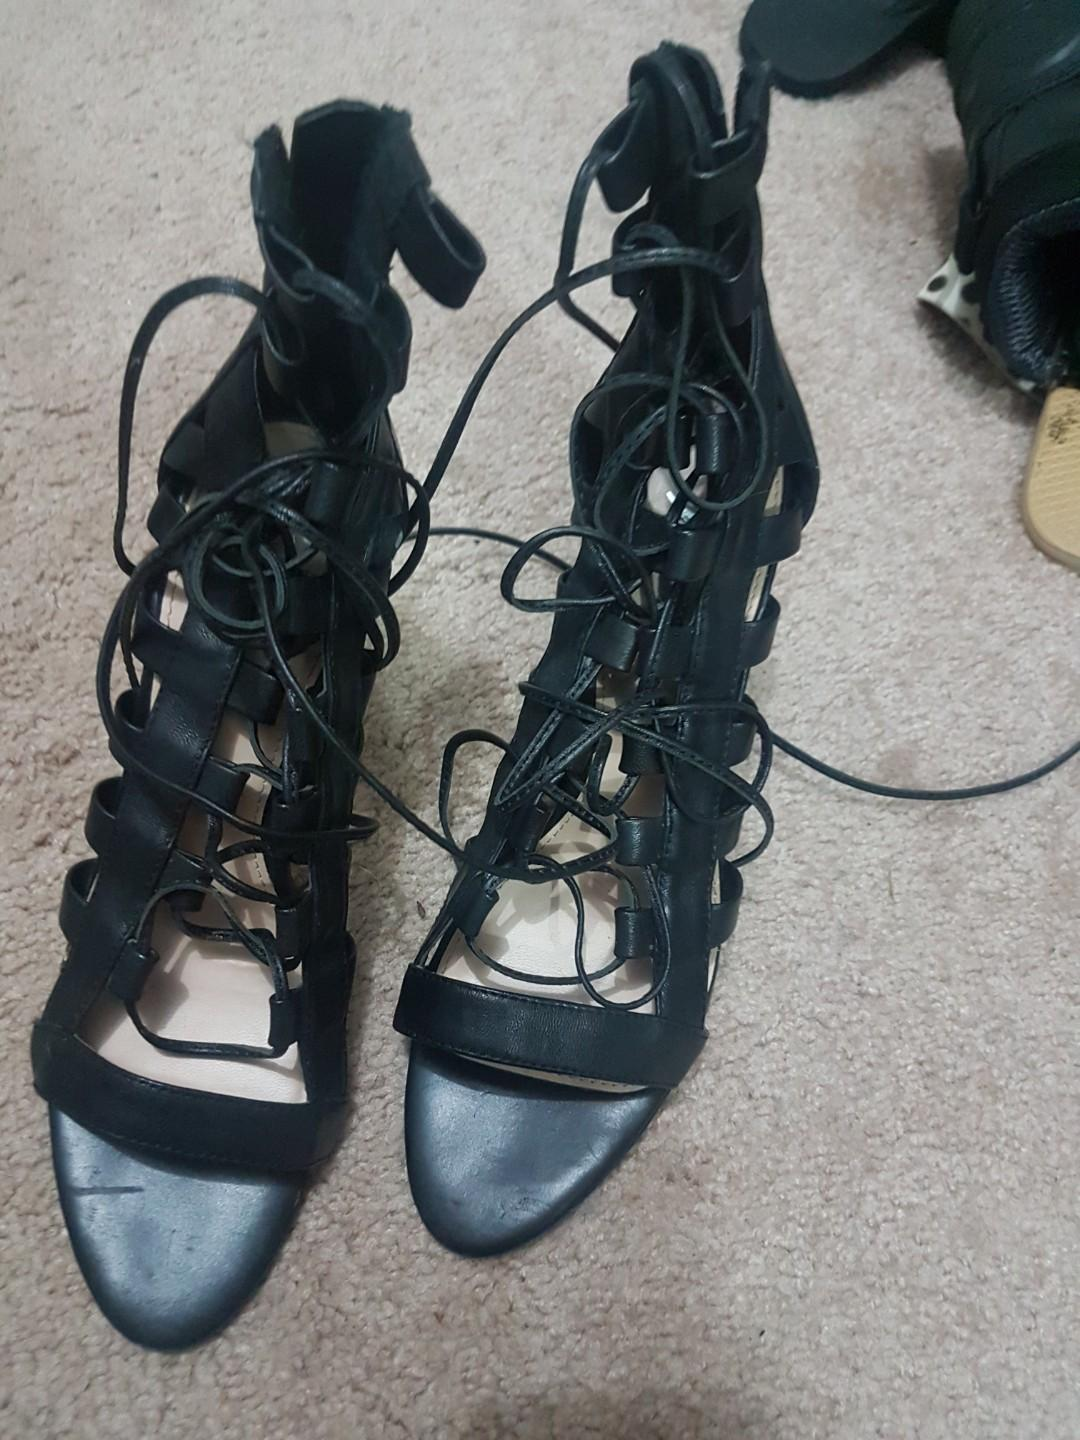 Wanted shoes copy of the Aquazzura Elaphe lace up high heels